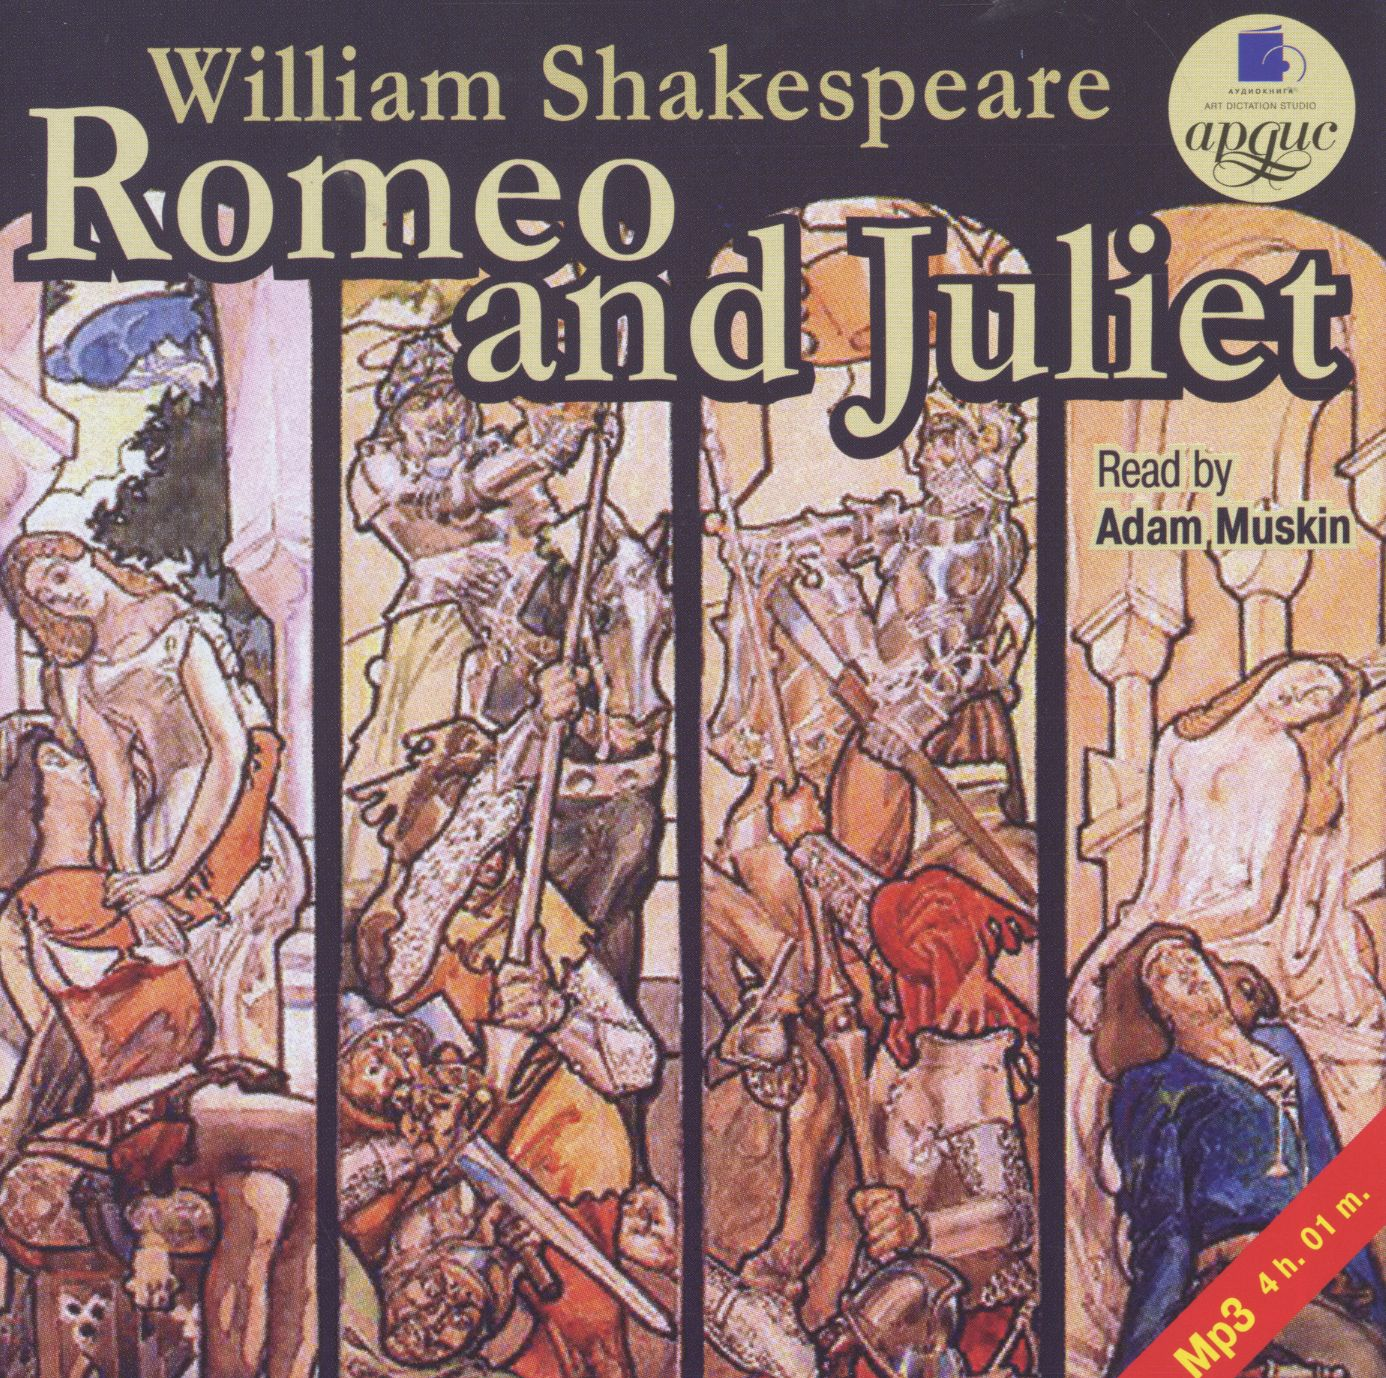 the betrayal of the adults to juliet in romeo and juliet a play by william shakespeare